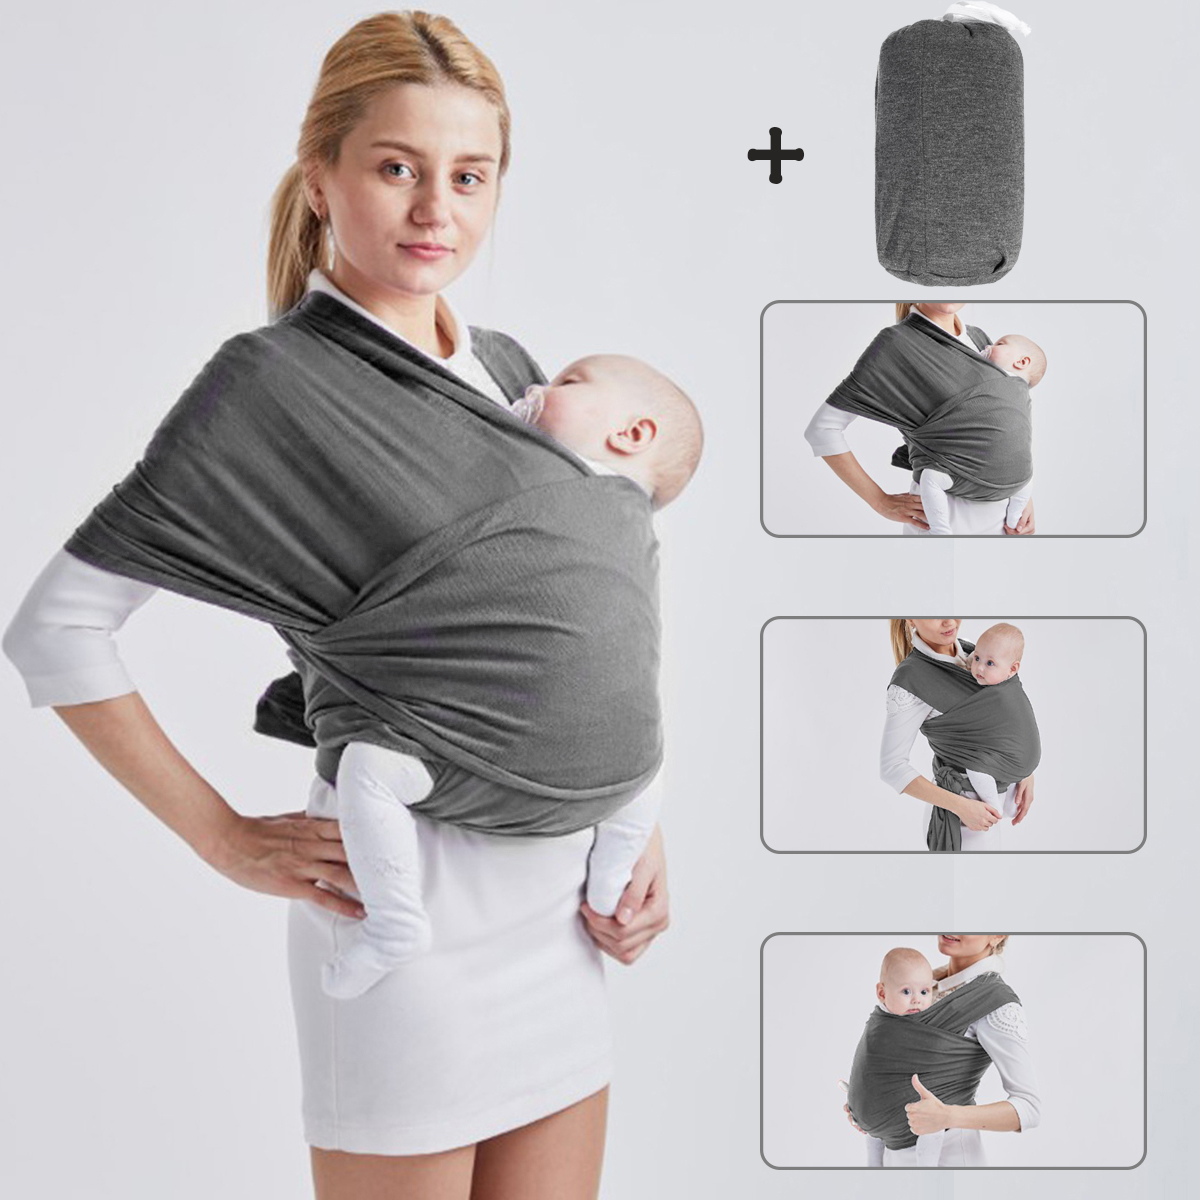 00e1f09d920 Image is loading Baby-Sling-Stretchy-Wrap-Carrier-Holder-Breastfeeding- Newborn-